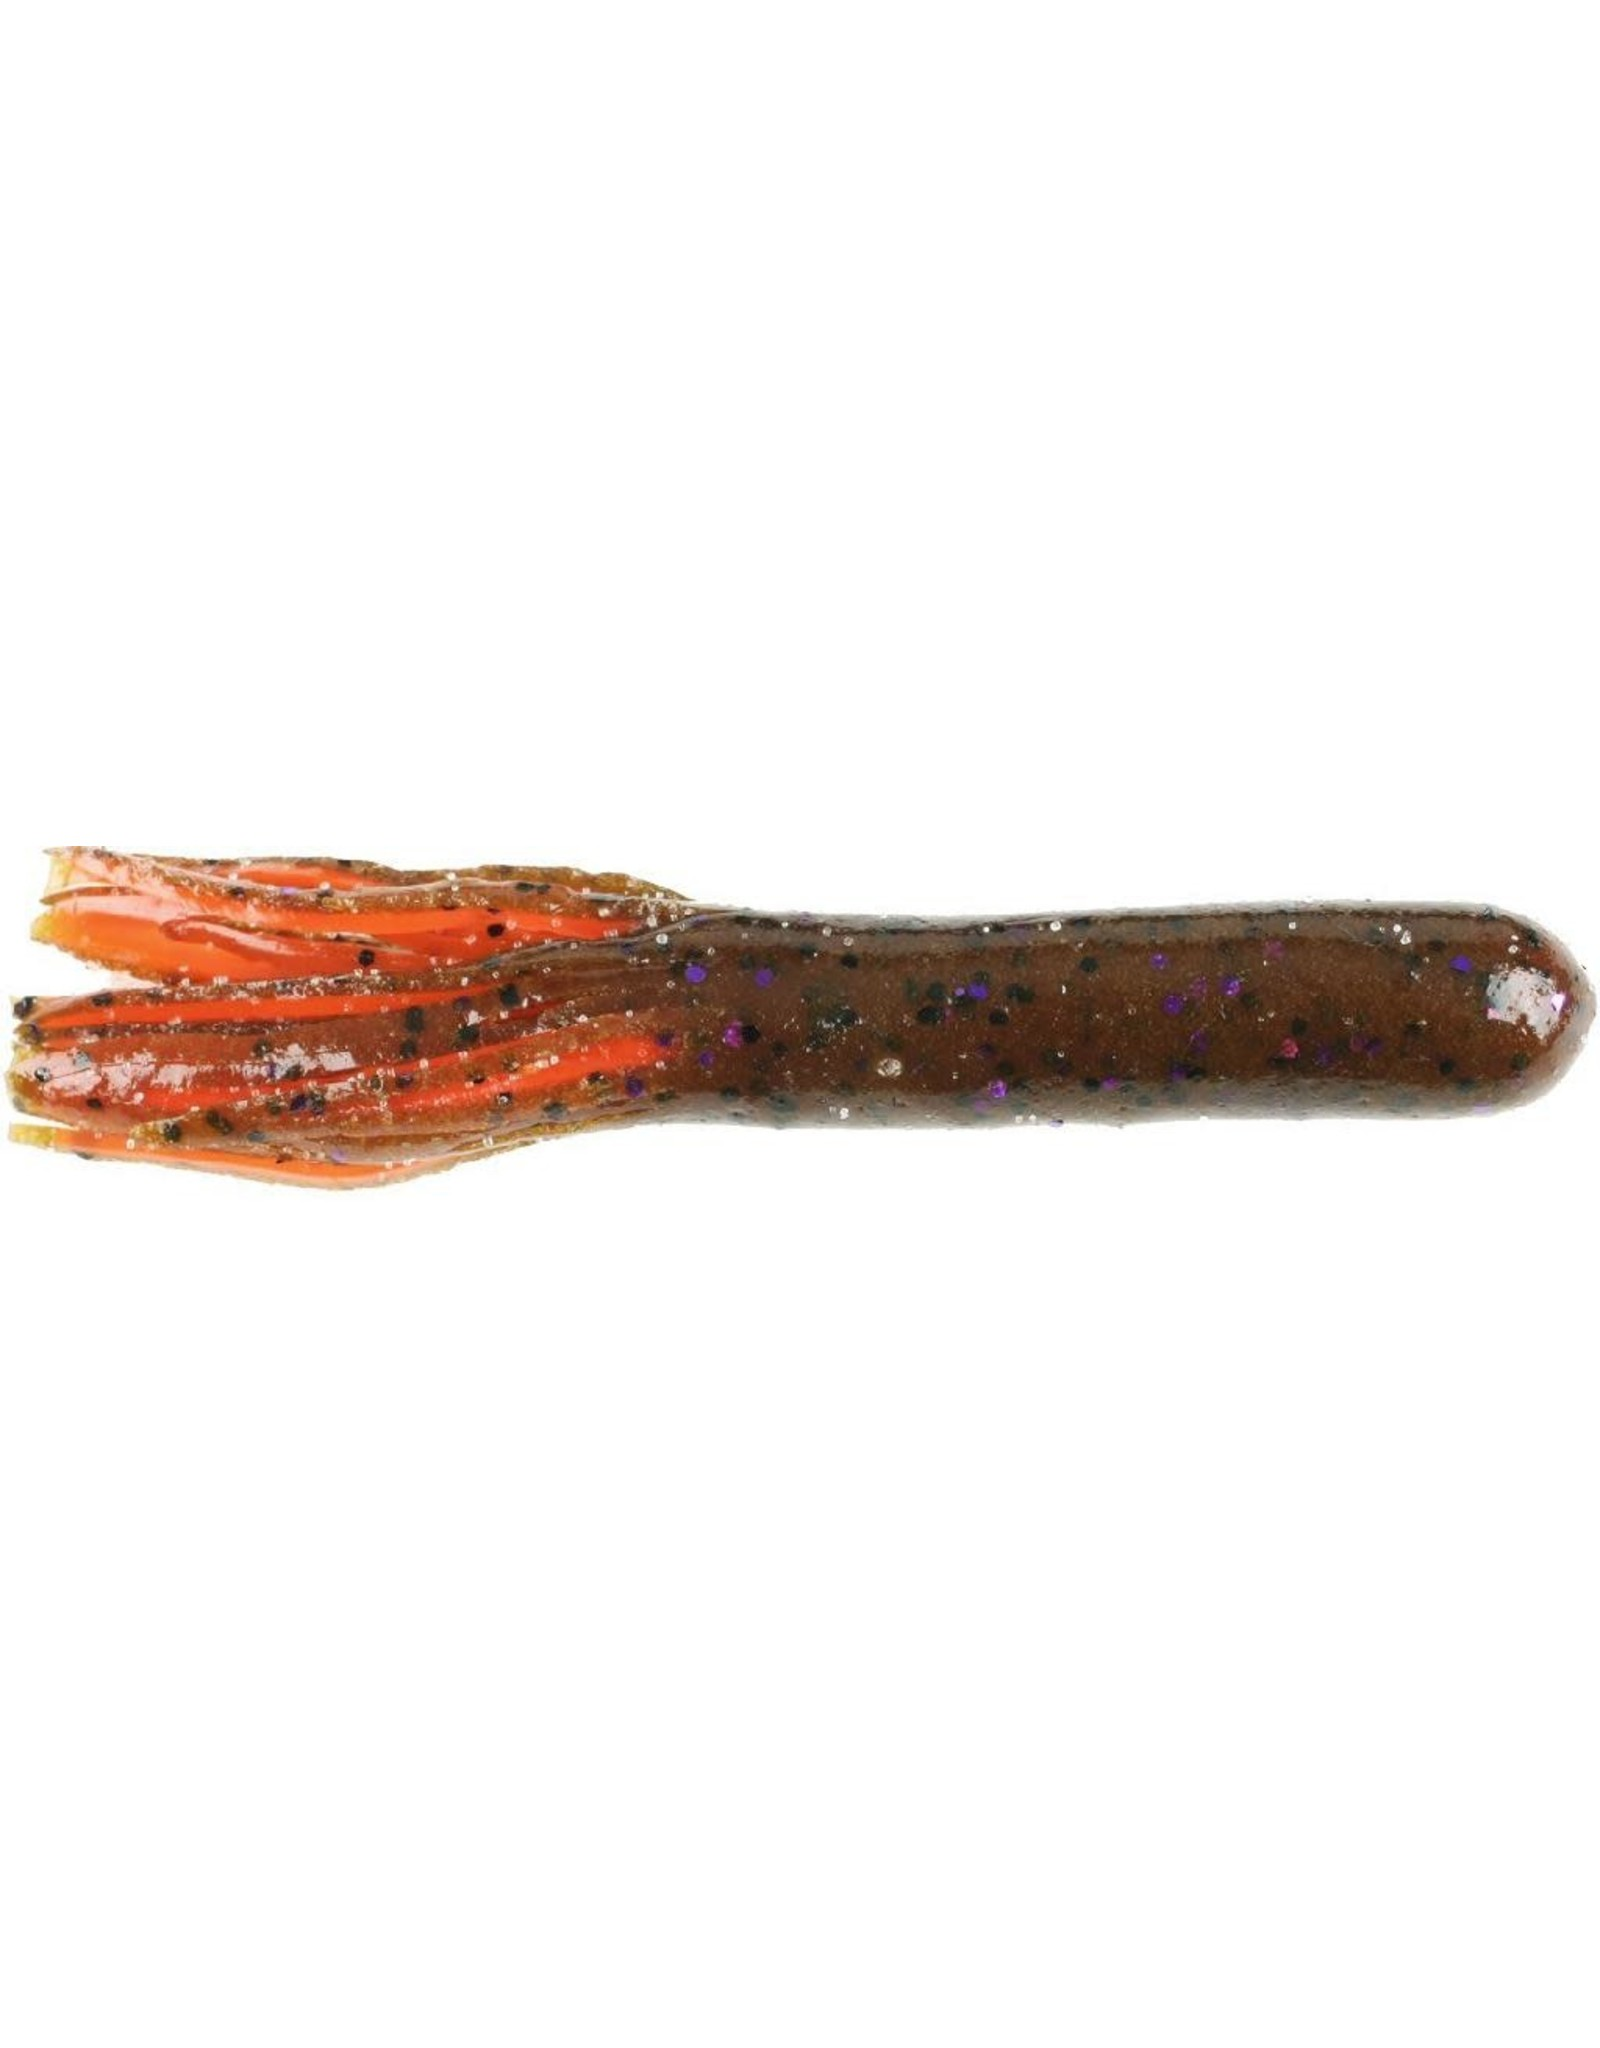 "Dry Creek Tube 3-1/2""  Red Hot Craw"